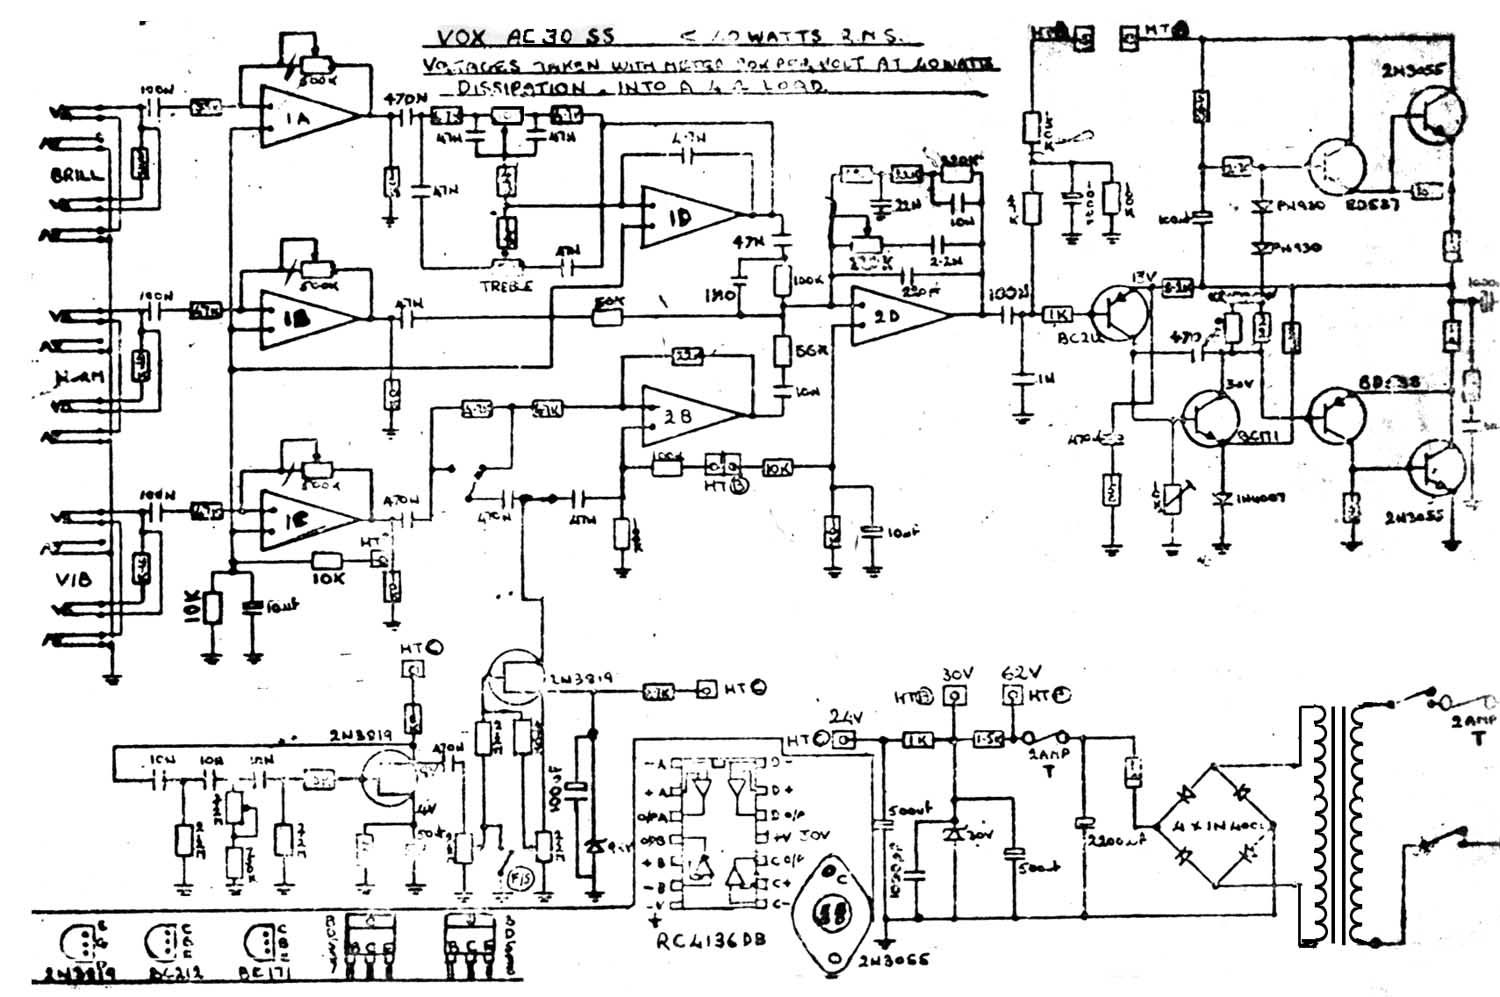 Vox Vintage Circuit Diagrams on compressor schematic symbol, trane compressor diagram, compressor architecture diagram, compressor system diagram, compressor capacitor diagram, natural gas compressor station diagram, scroll compressor diagram, refrigeration compressor wiring diagram, compressor relay diagram, copeland compressor diagram, reciprocating compressor diagram, compressor mechanical diagram, air compressor diagram, natural gas formation diagram, current relay wiring diagram, compressor terminal diagram, compressor switch diagram, hvac compressor diagram, compressor wire diagram, compressor motor diagram,